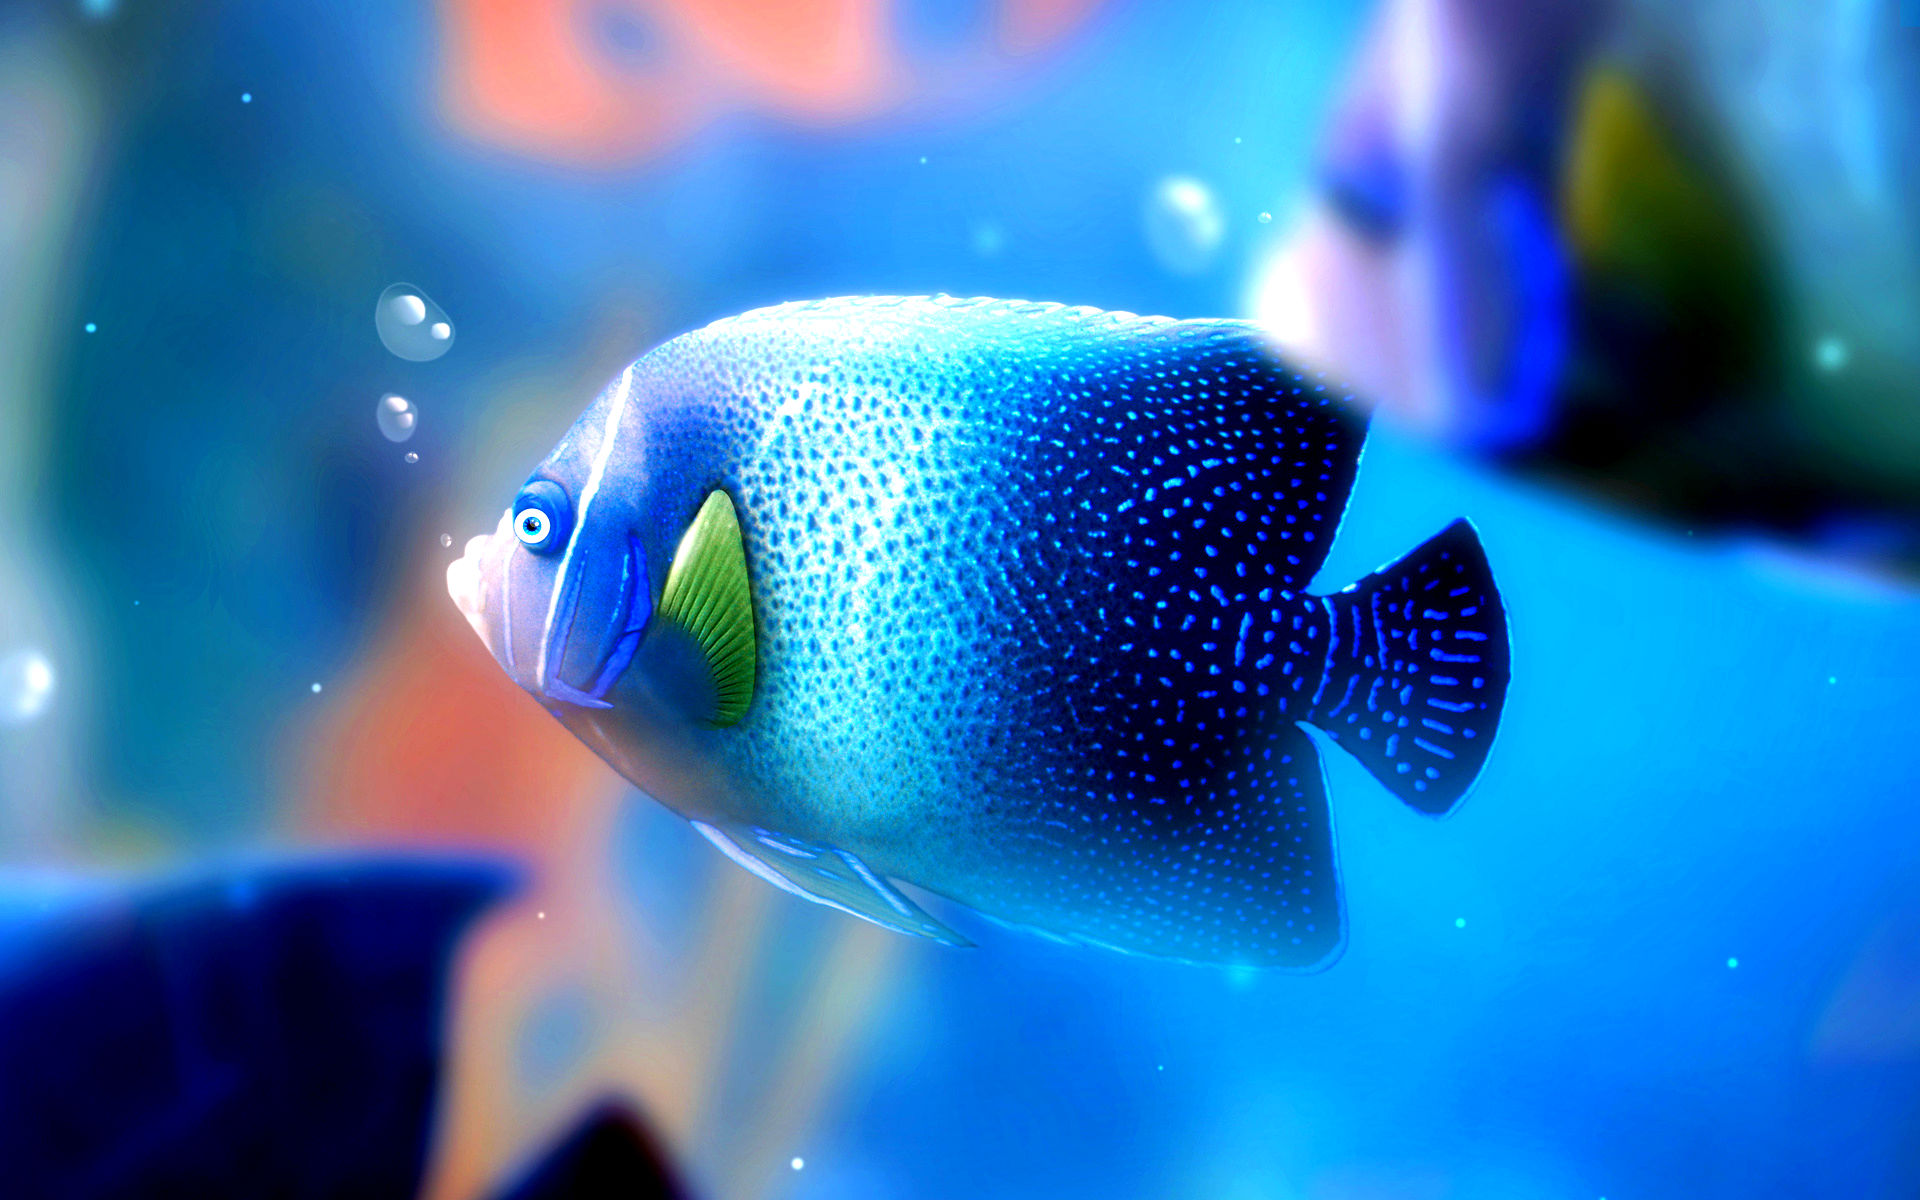 Fish wallpapers best wallpapers for What fish is this